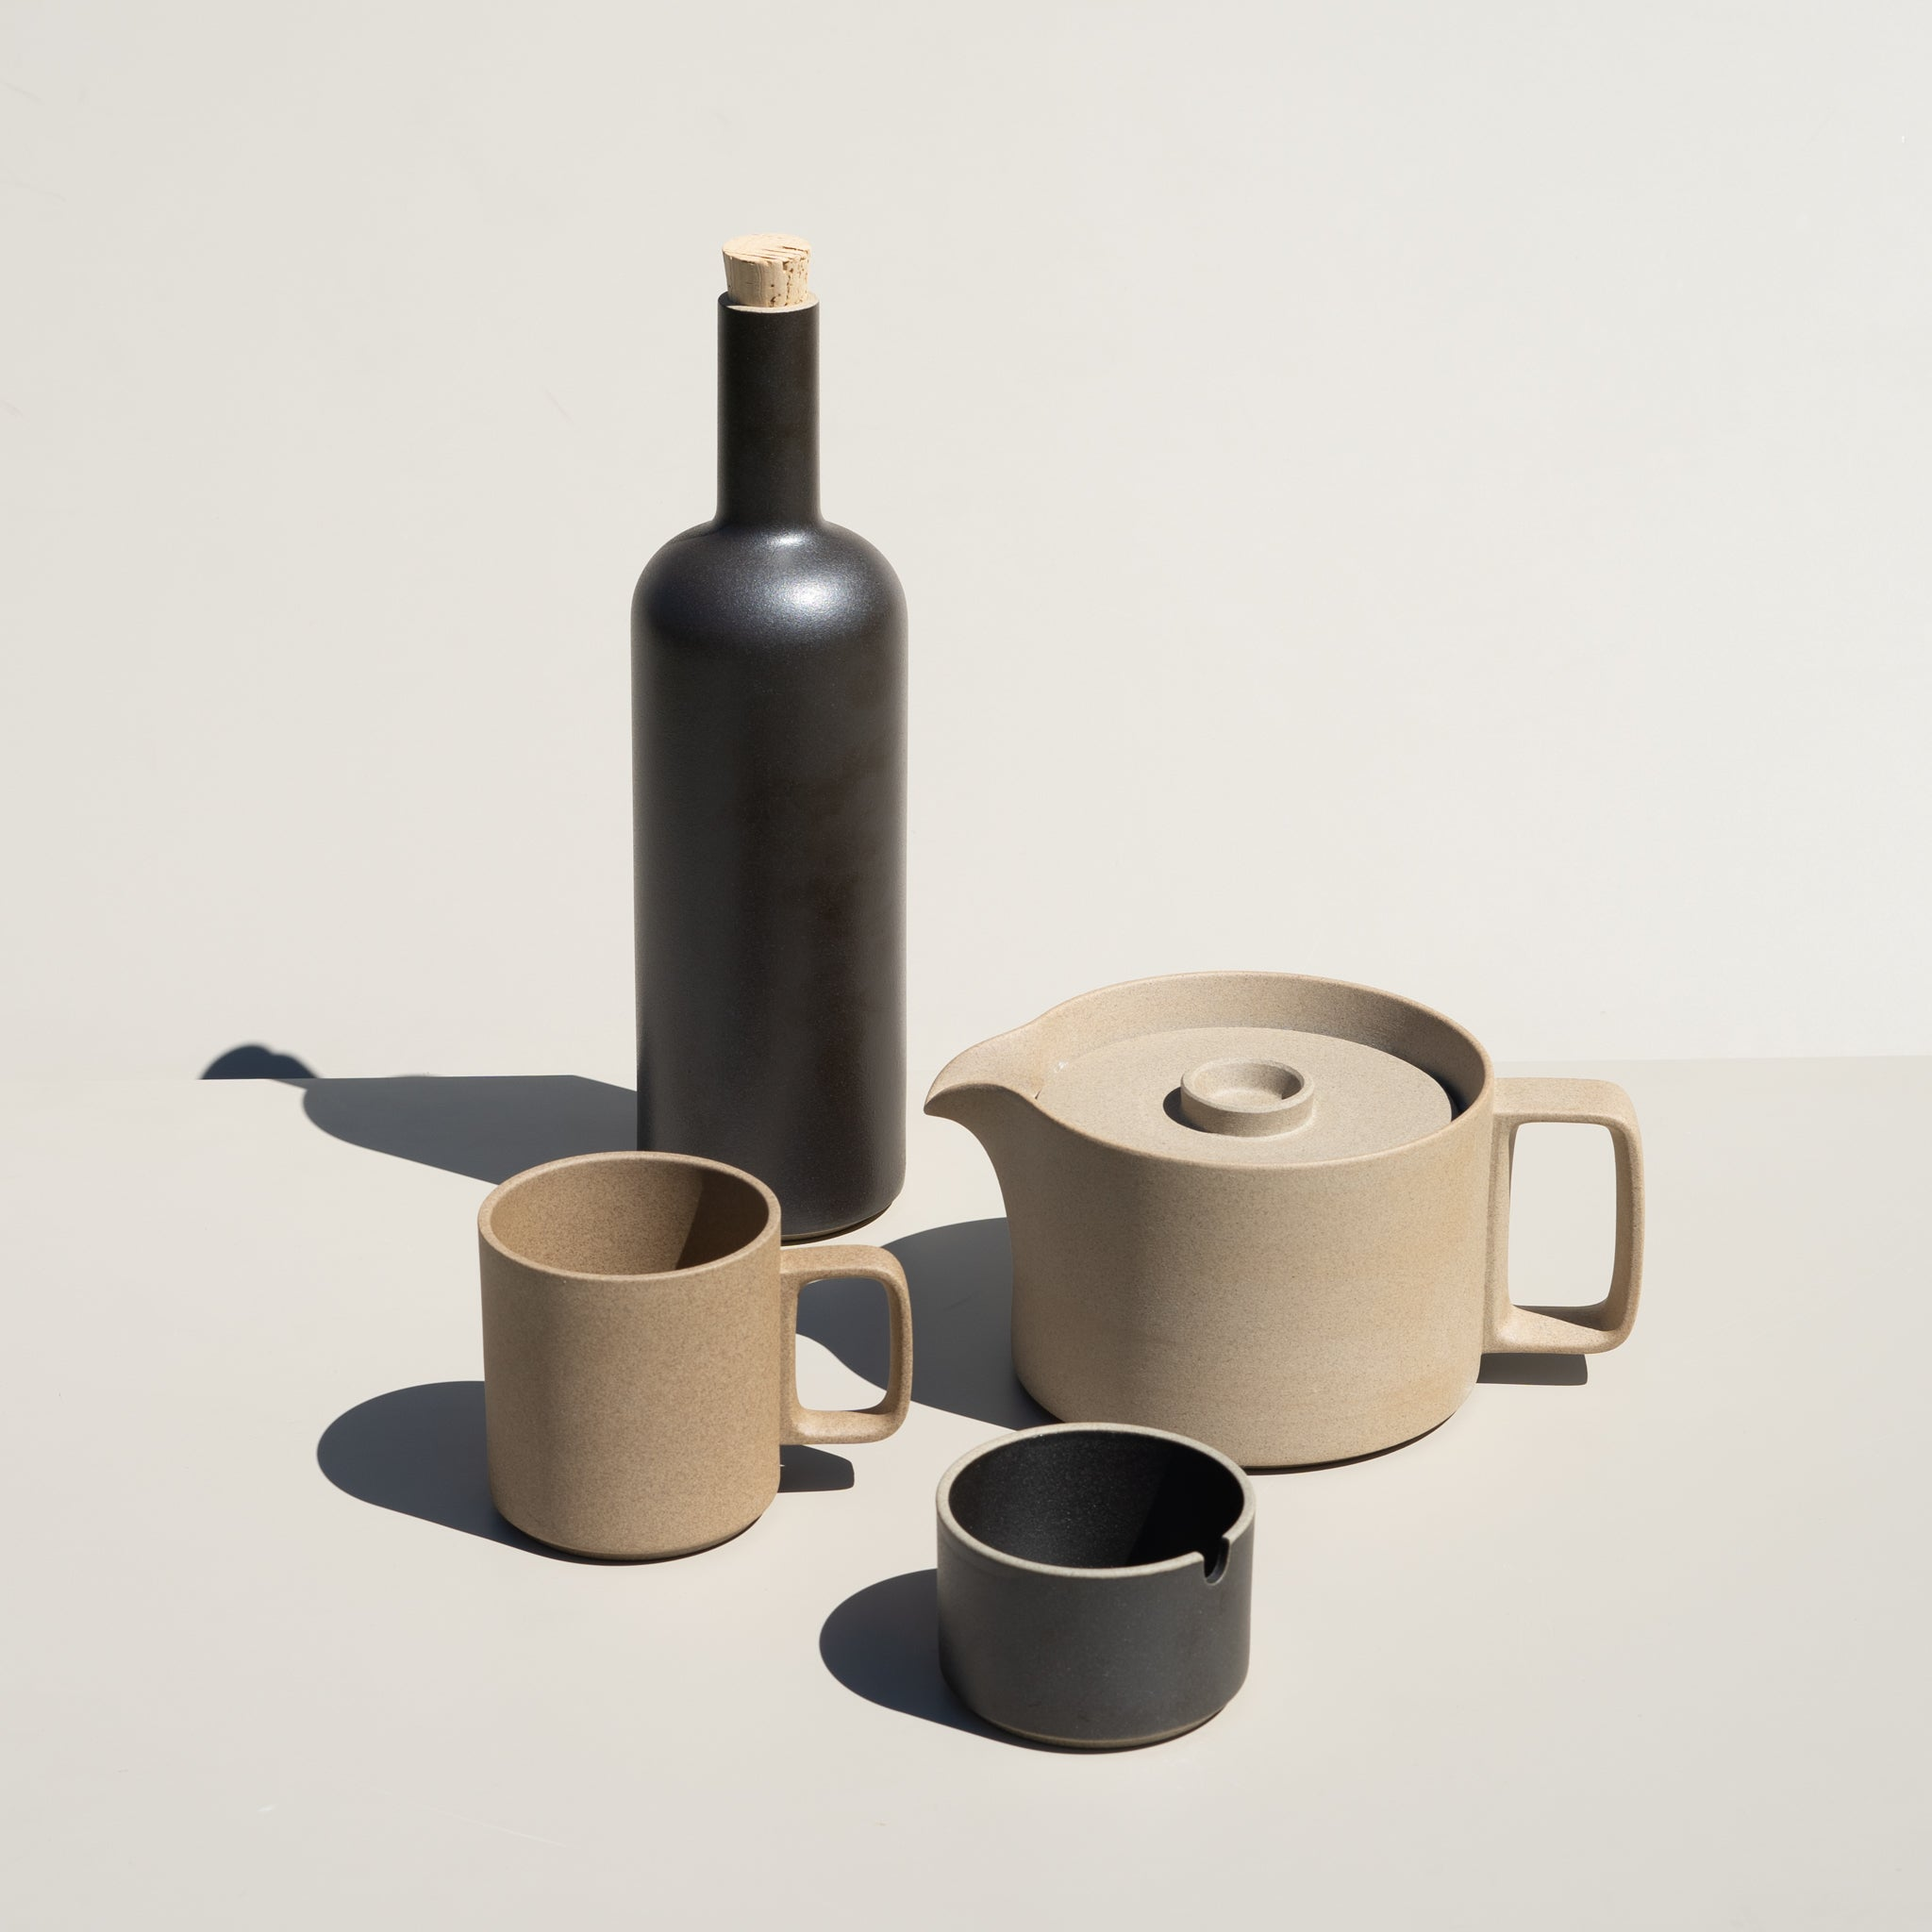 Hasami Porcelain ceramic wares made in Japan, featuring the Sugar Pot in natural finish.